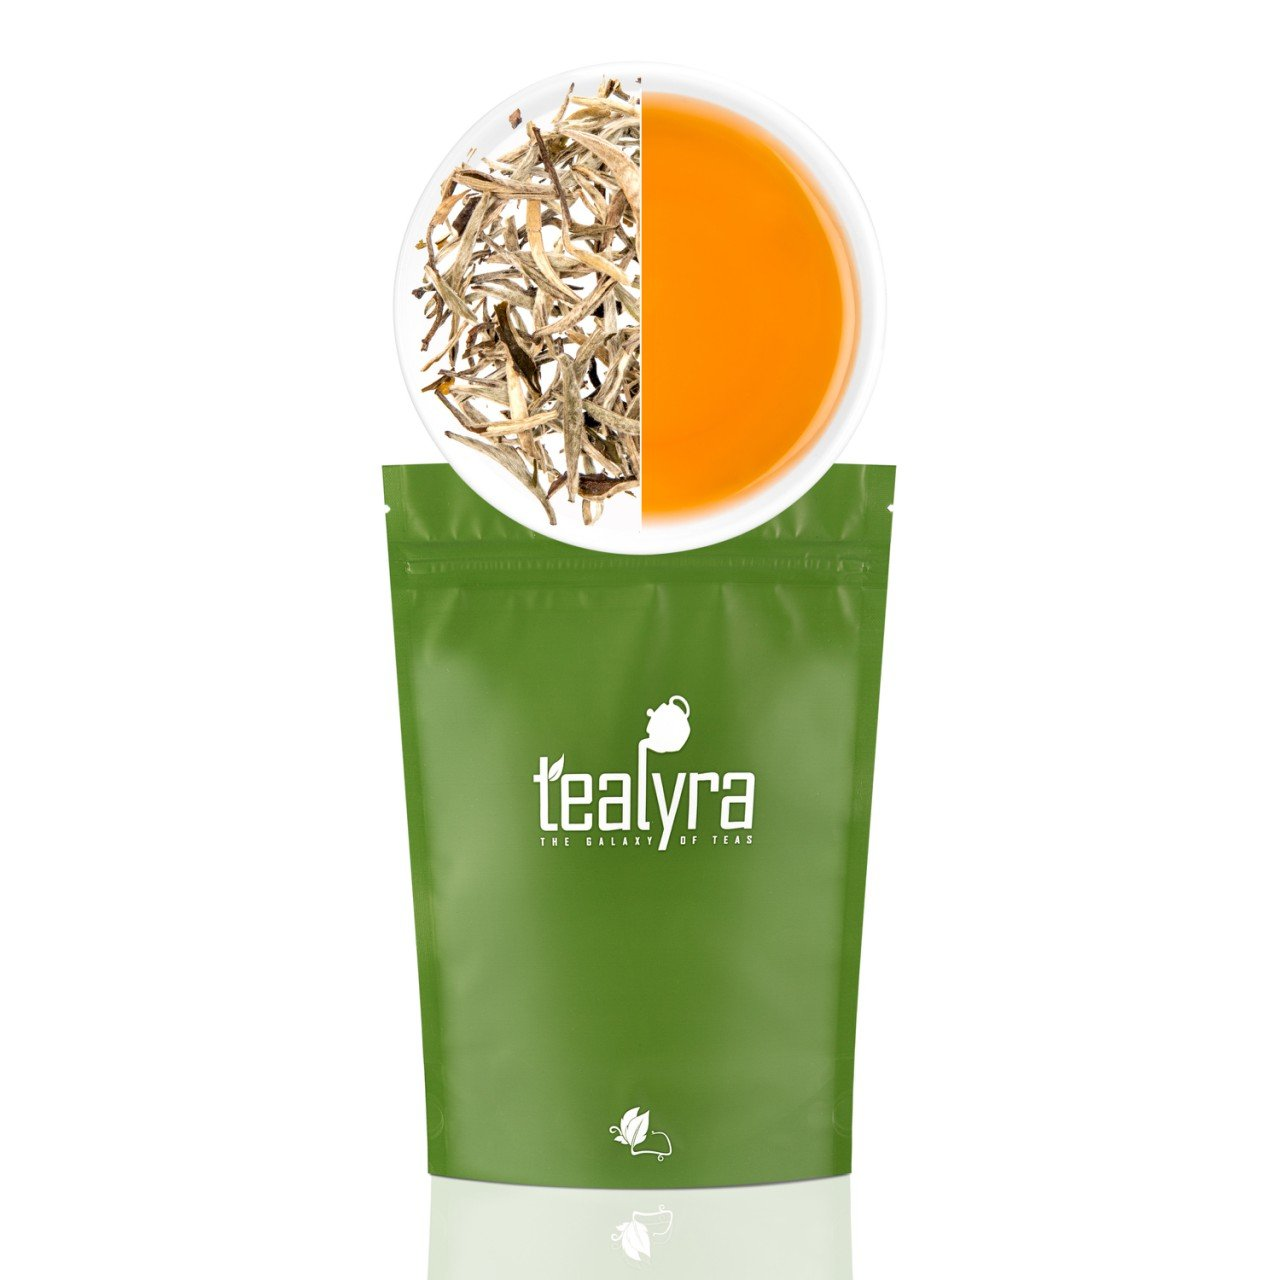 Tealyra - Luxury Jasmine Silver Needle White Losse Tea - Organically Grown in Fujian China - Loose Leaf Tea - Caffeine Level Low - 110g (4-ounce) by Tealyra (Image #1)